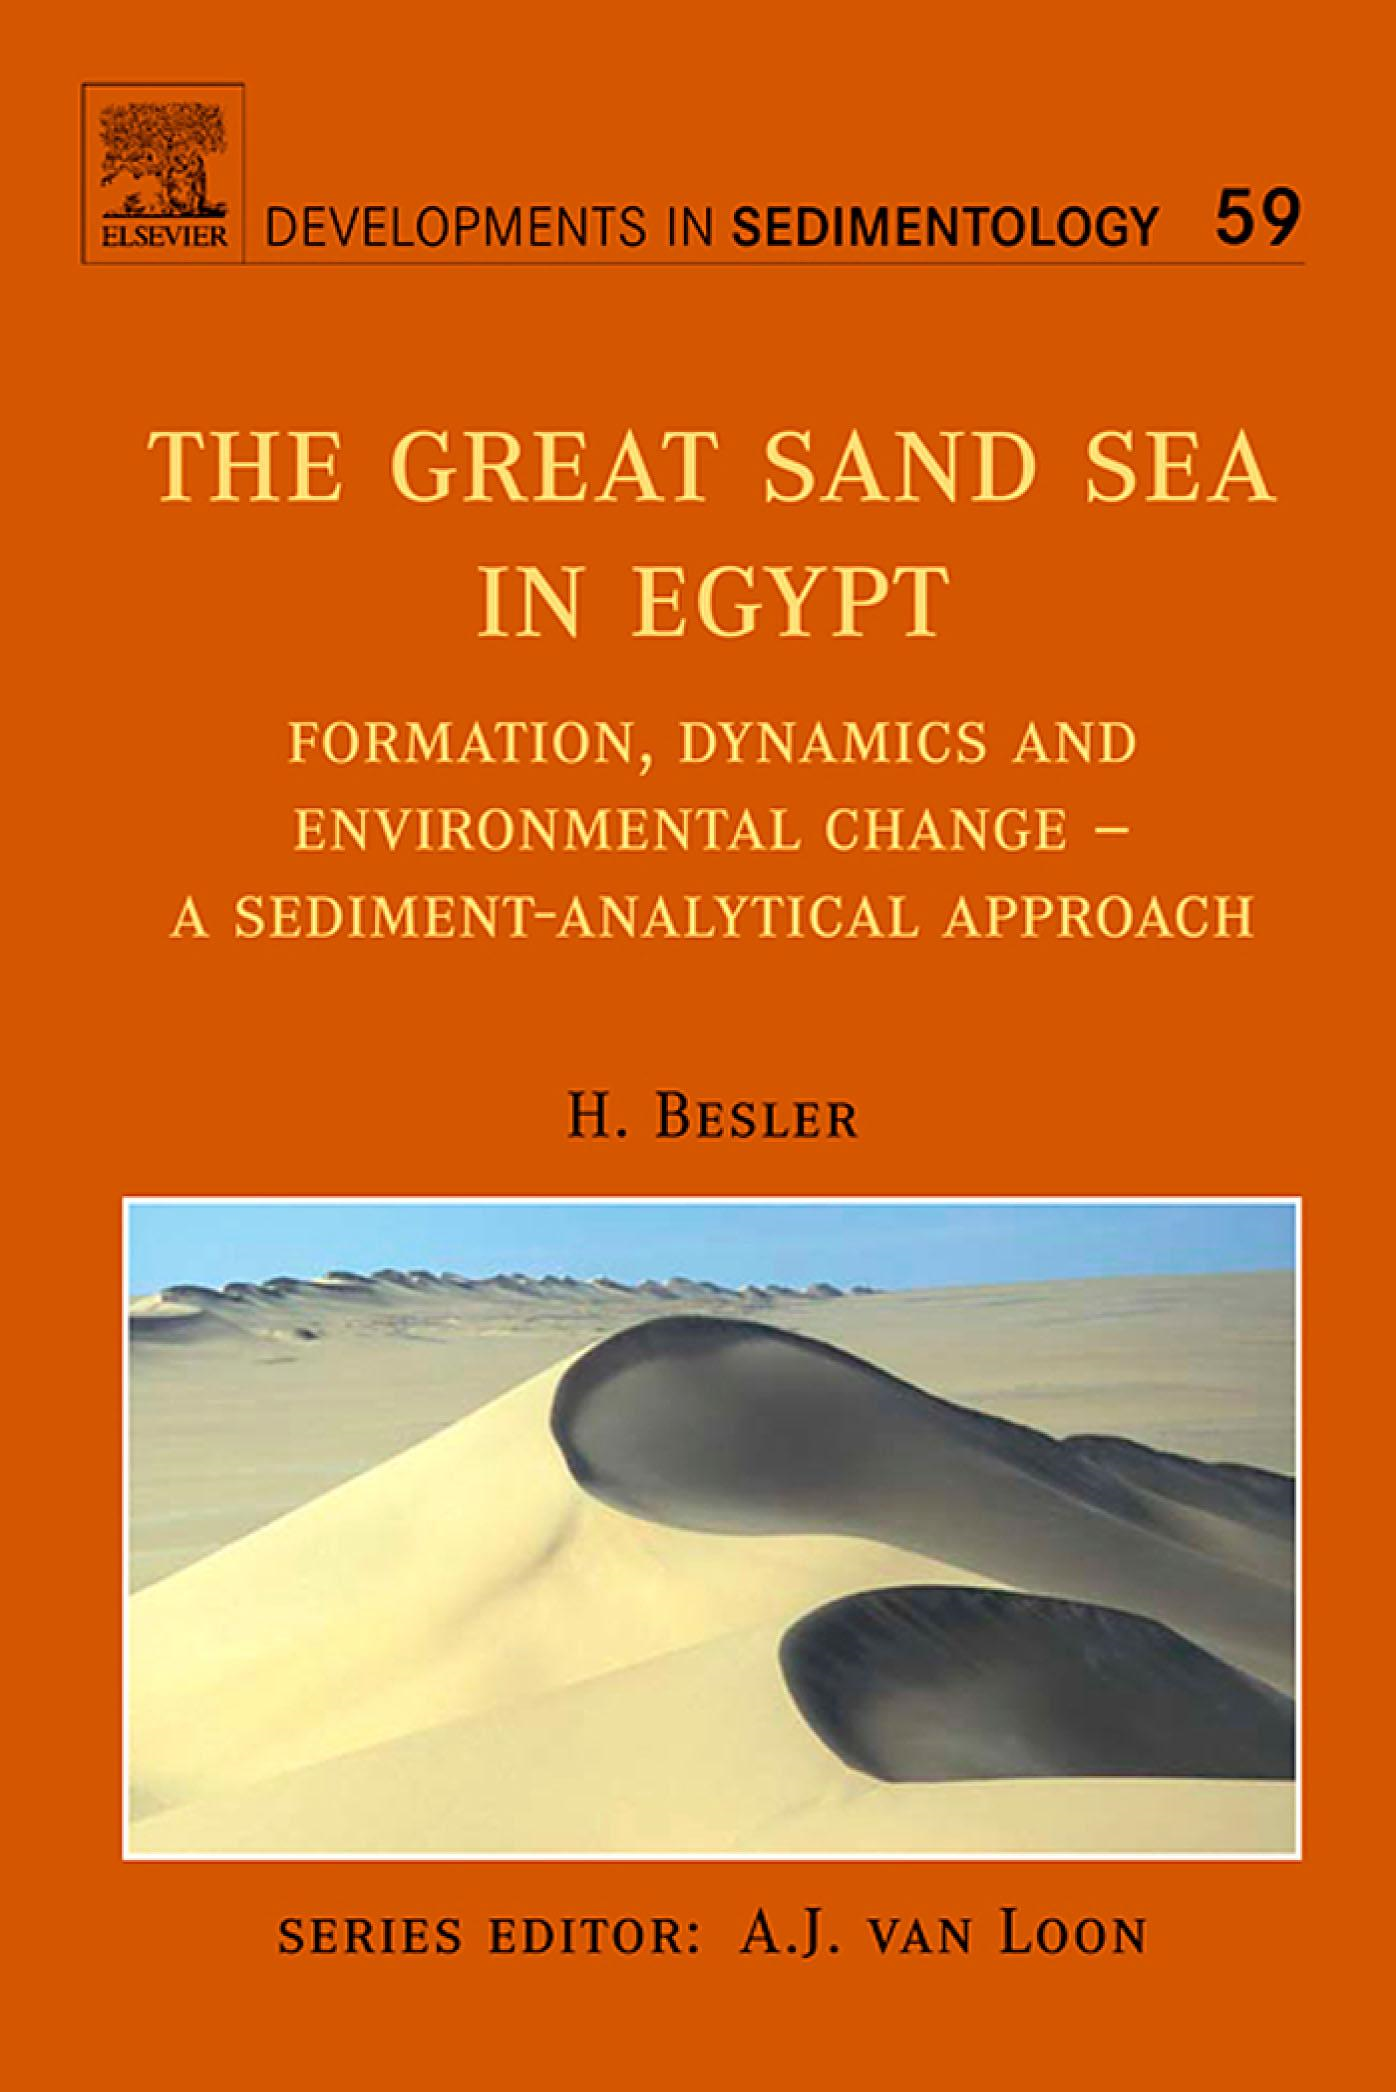 The Great Sand Sea in Egypt: Formation, Dynamics and Environmental Change - a Sediment-analytical Approach By: Besler, H.